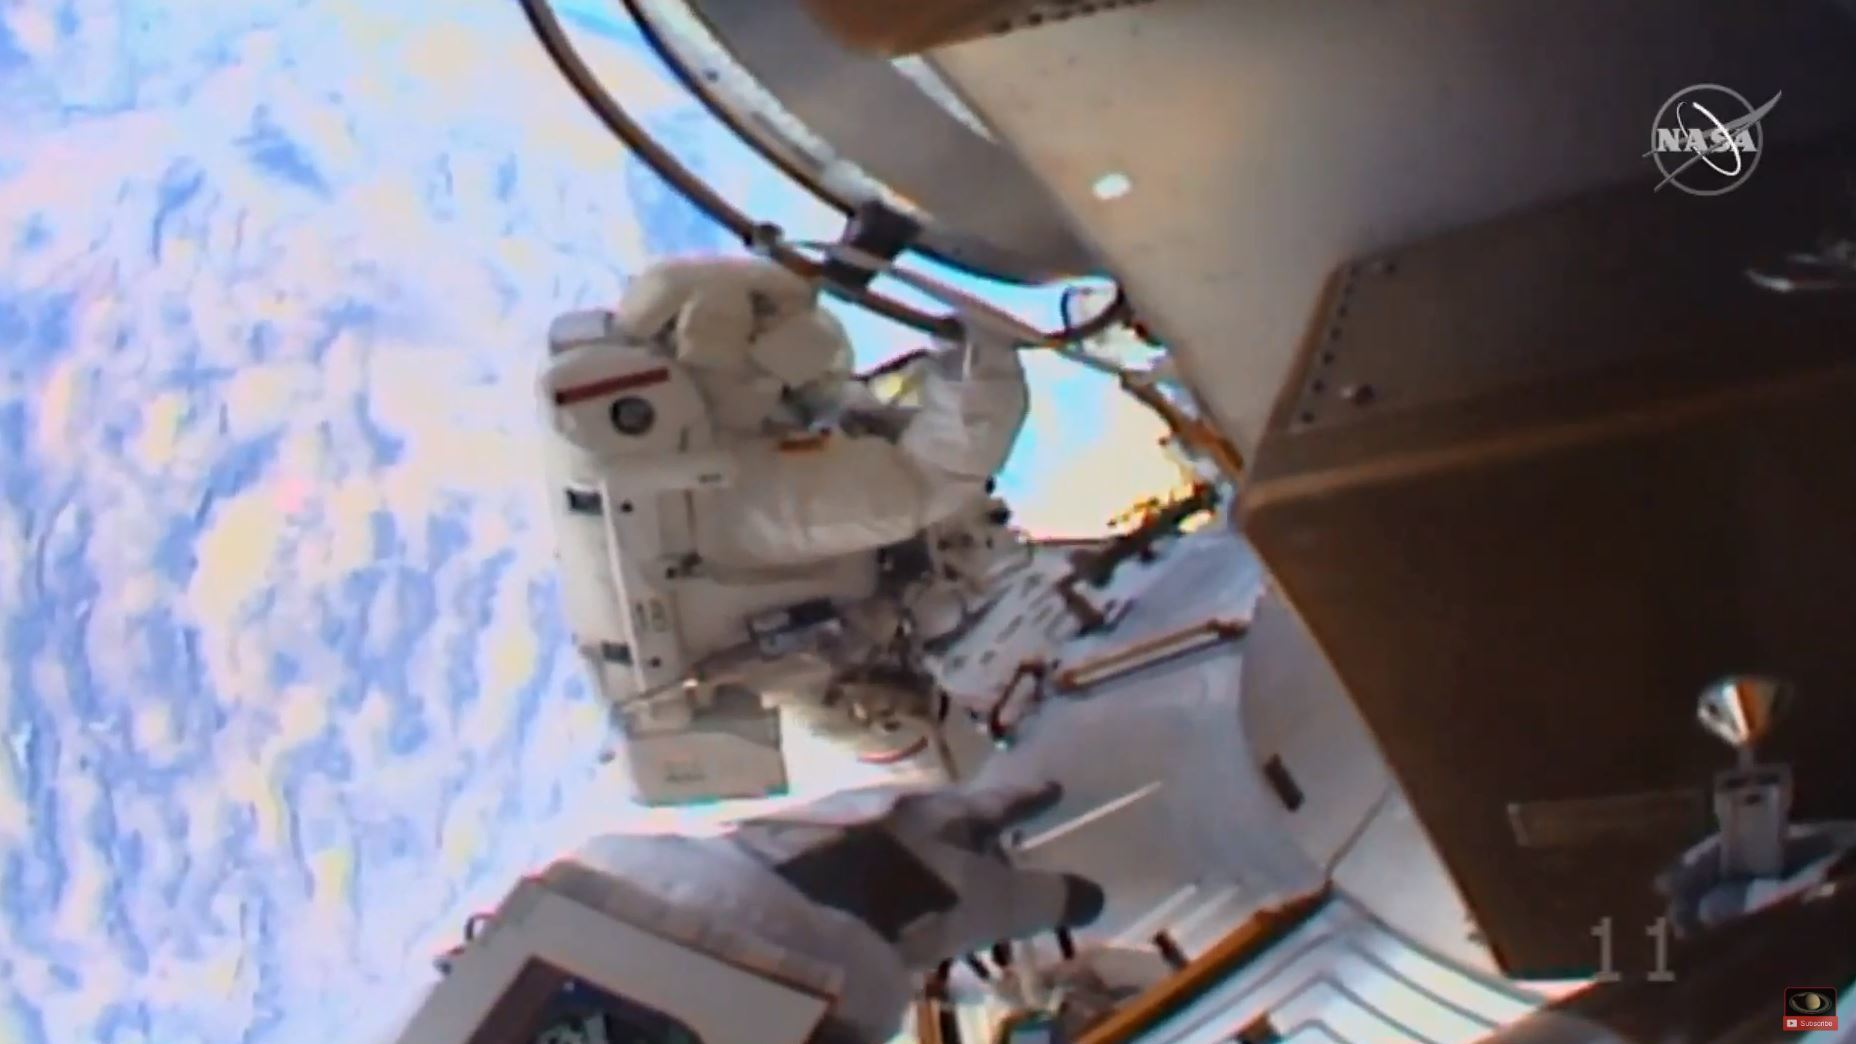 Astronauts Christina Koch and Jessica Meir conducted some much-needed work on the exterior of the International Space Station on Friday. Along the way, they also enjoyed amazing views of Earth.